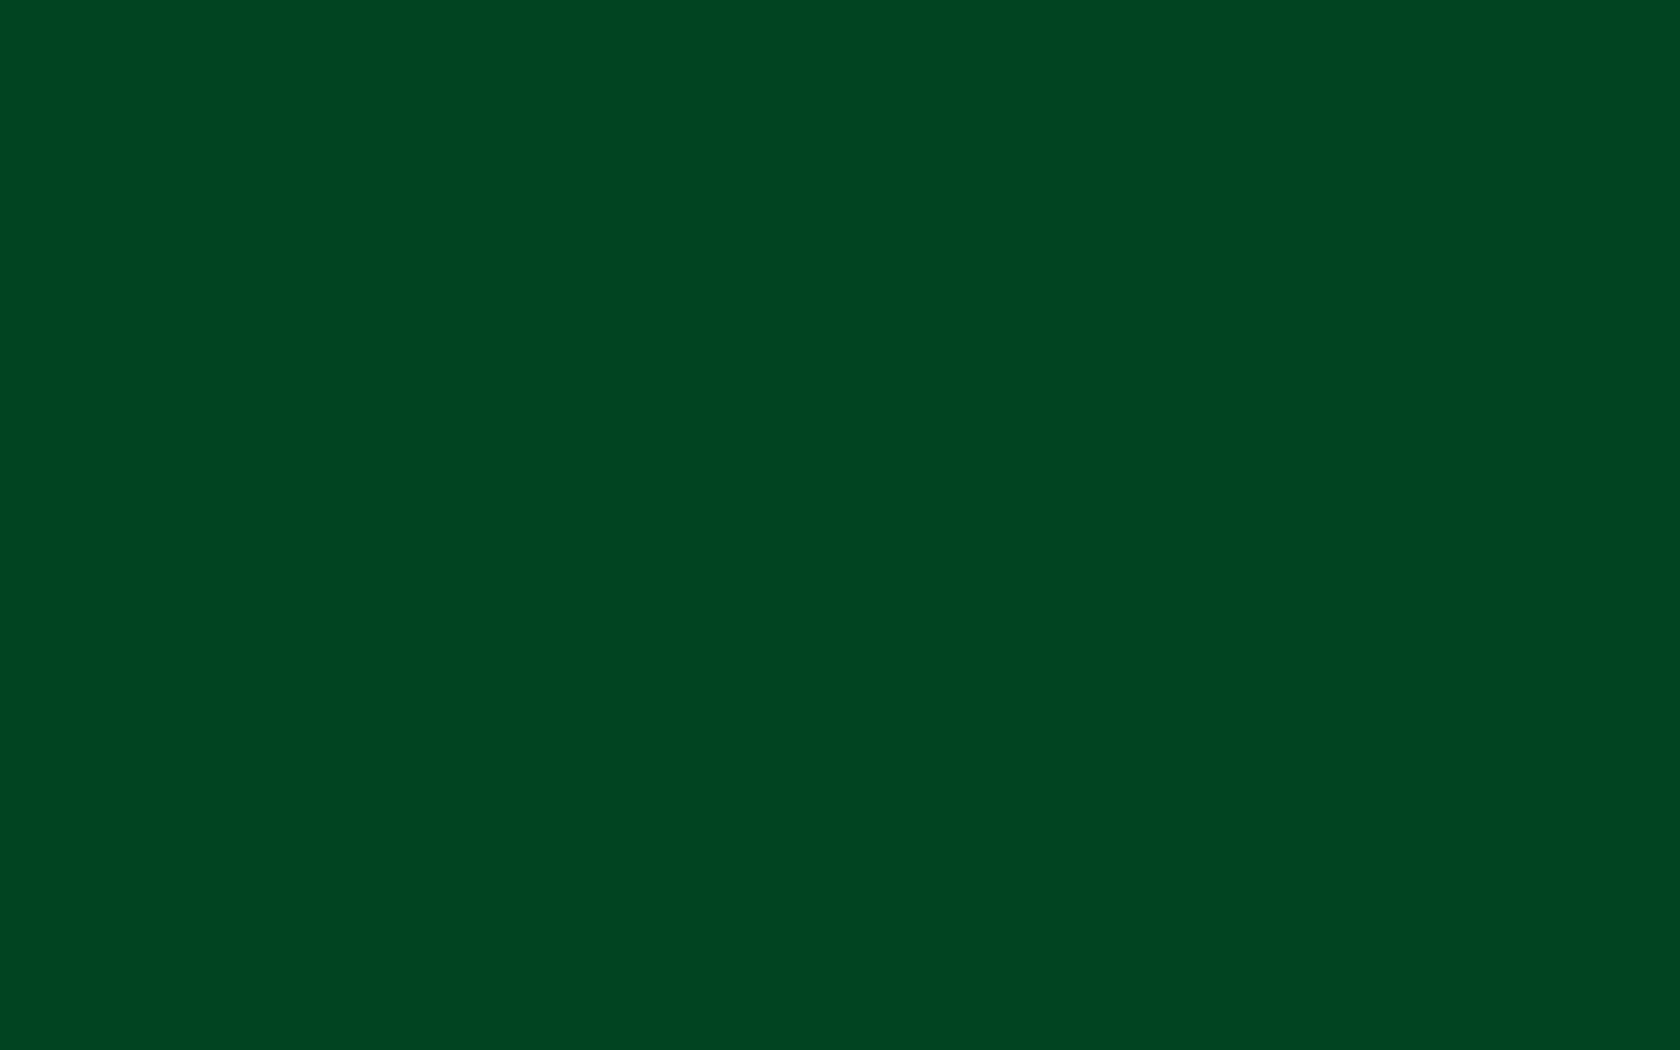 1680x1050 Forest Green Traditional Solid Color Background